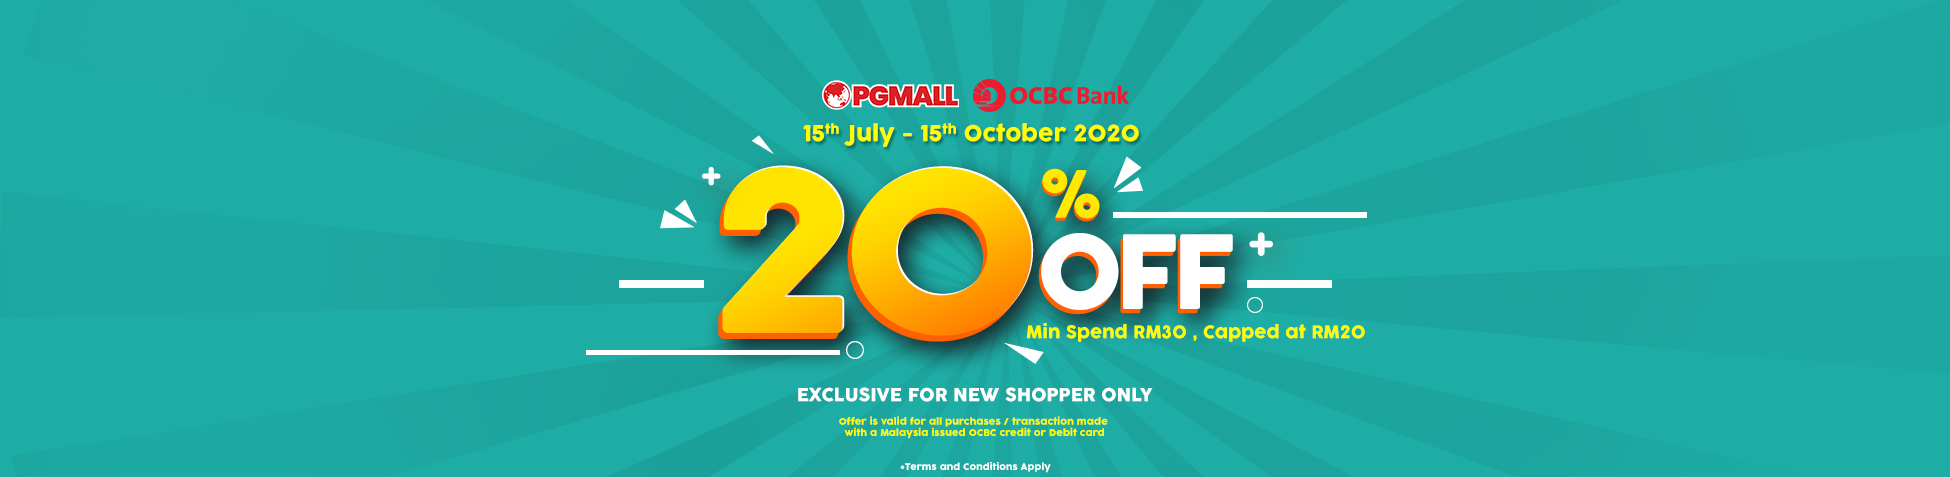 OCBC Card Holder get Great Discounts & Rewards When You Shop Online at PG Mall